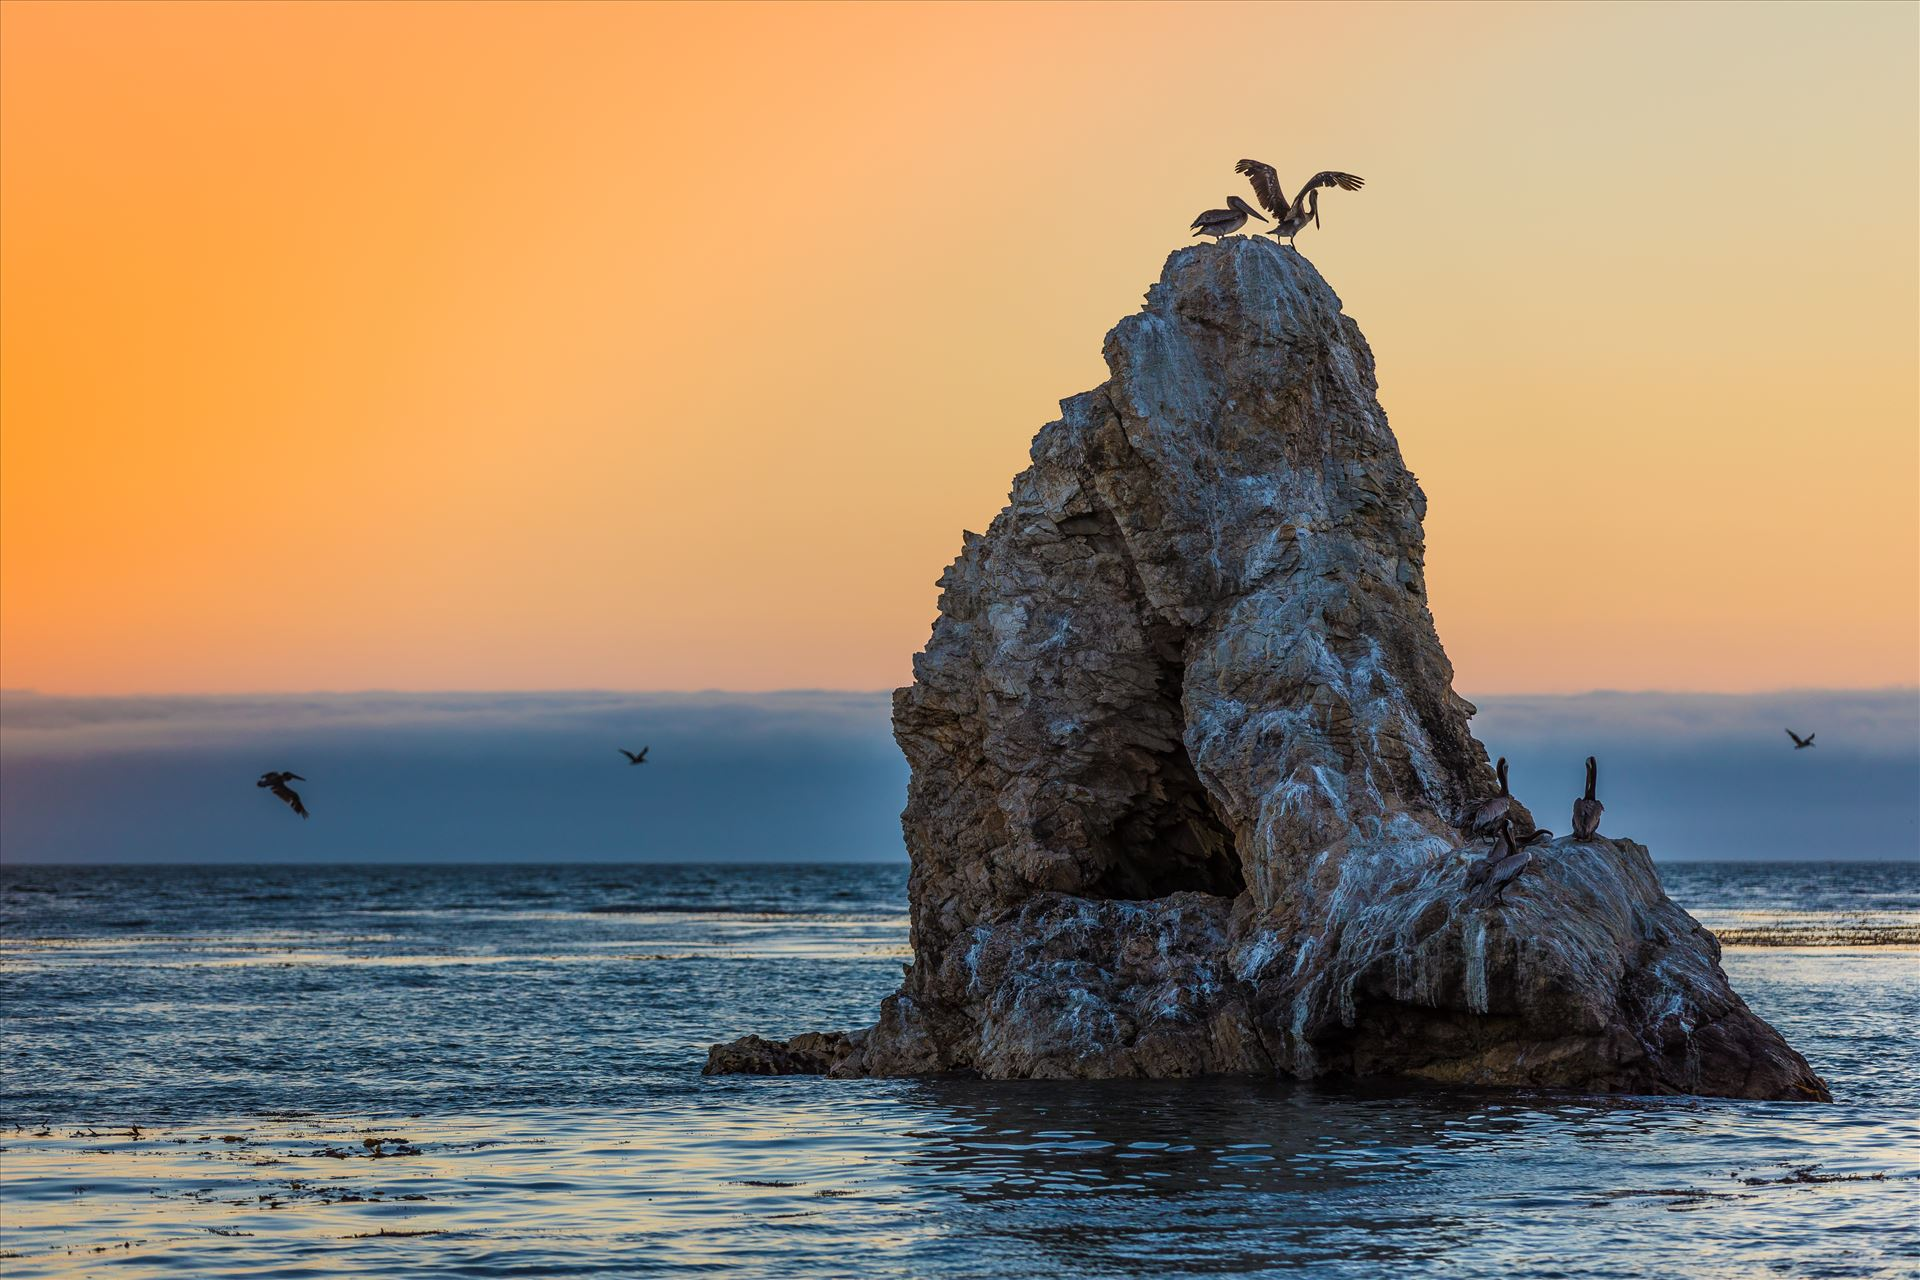 Pelican Rock - Pelicans roosting, taken from the edge of the beach Pismo Beach, California by D Scott Smith